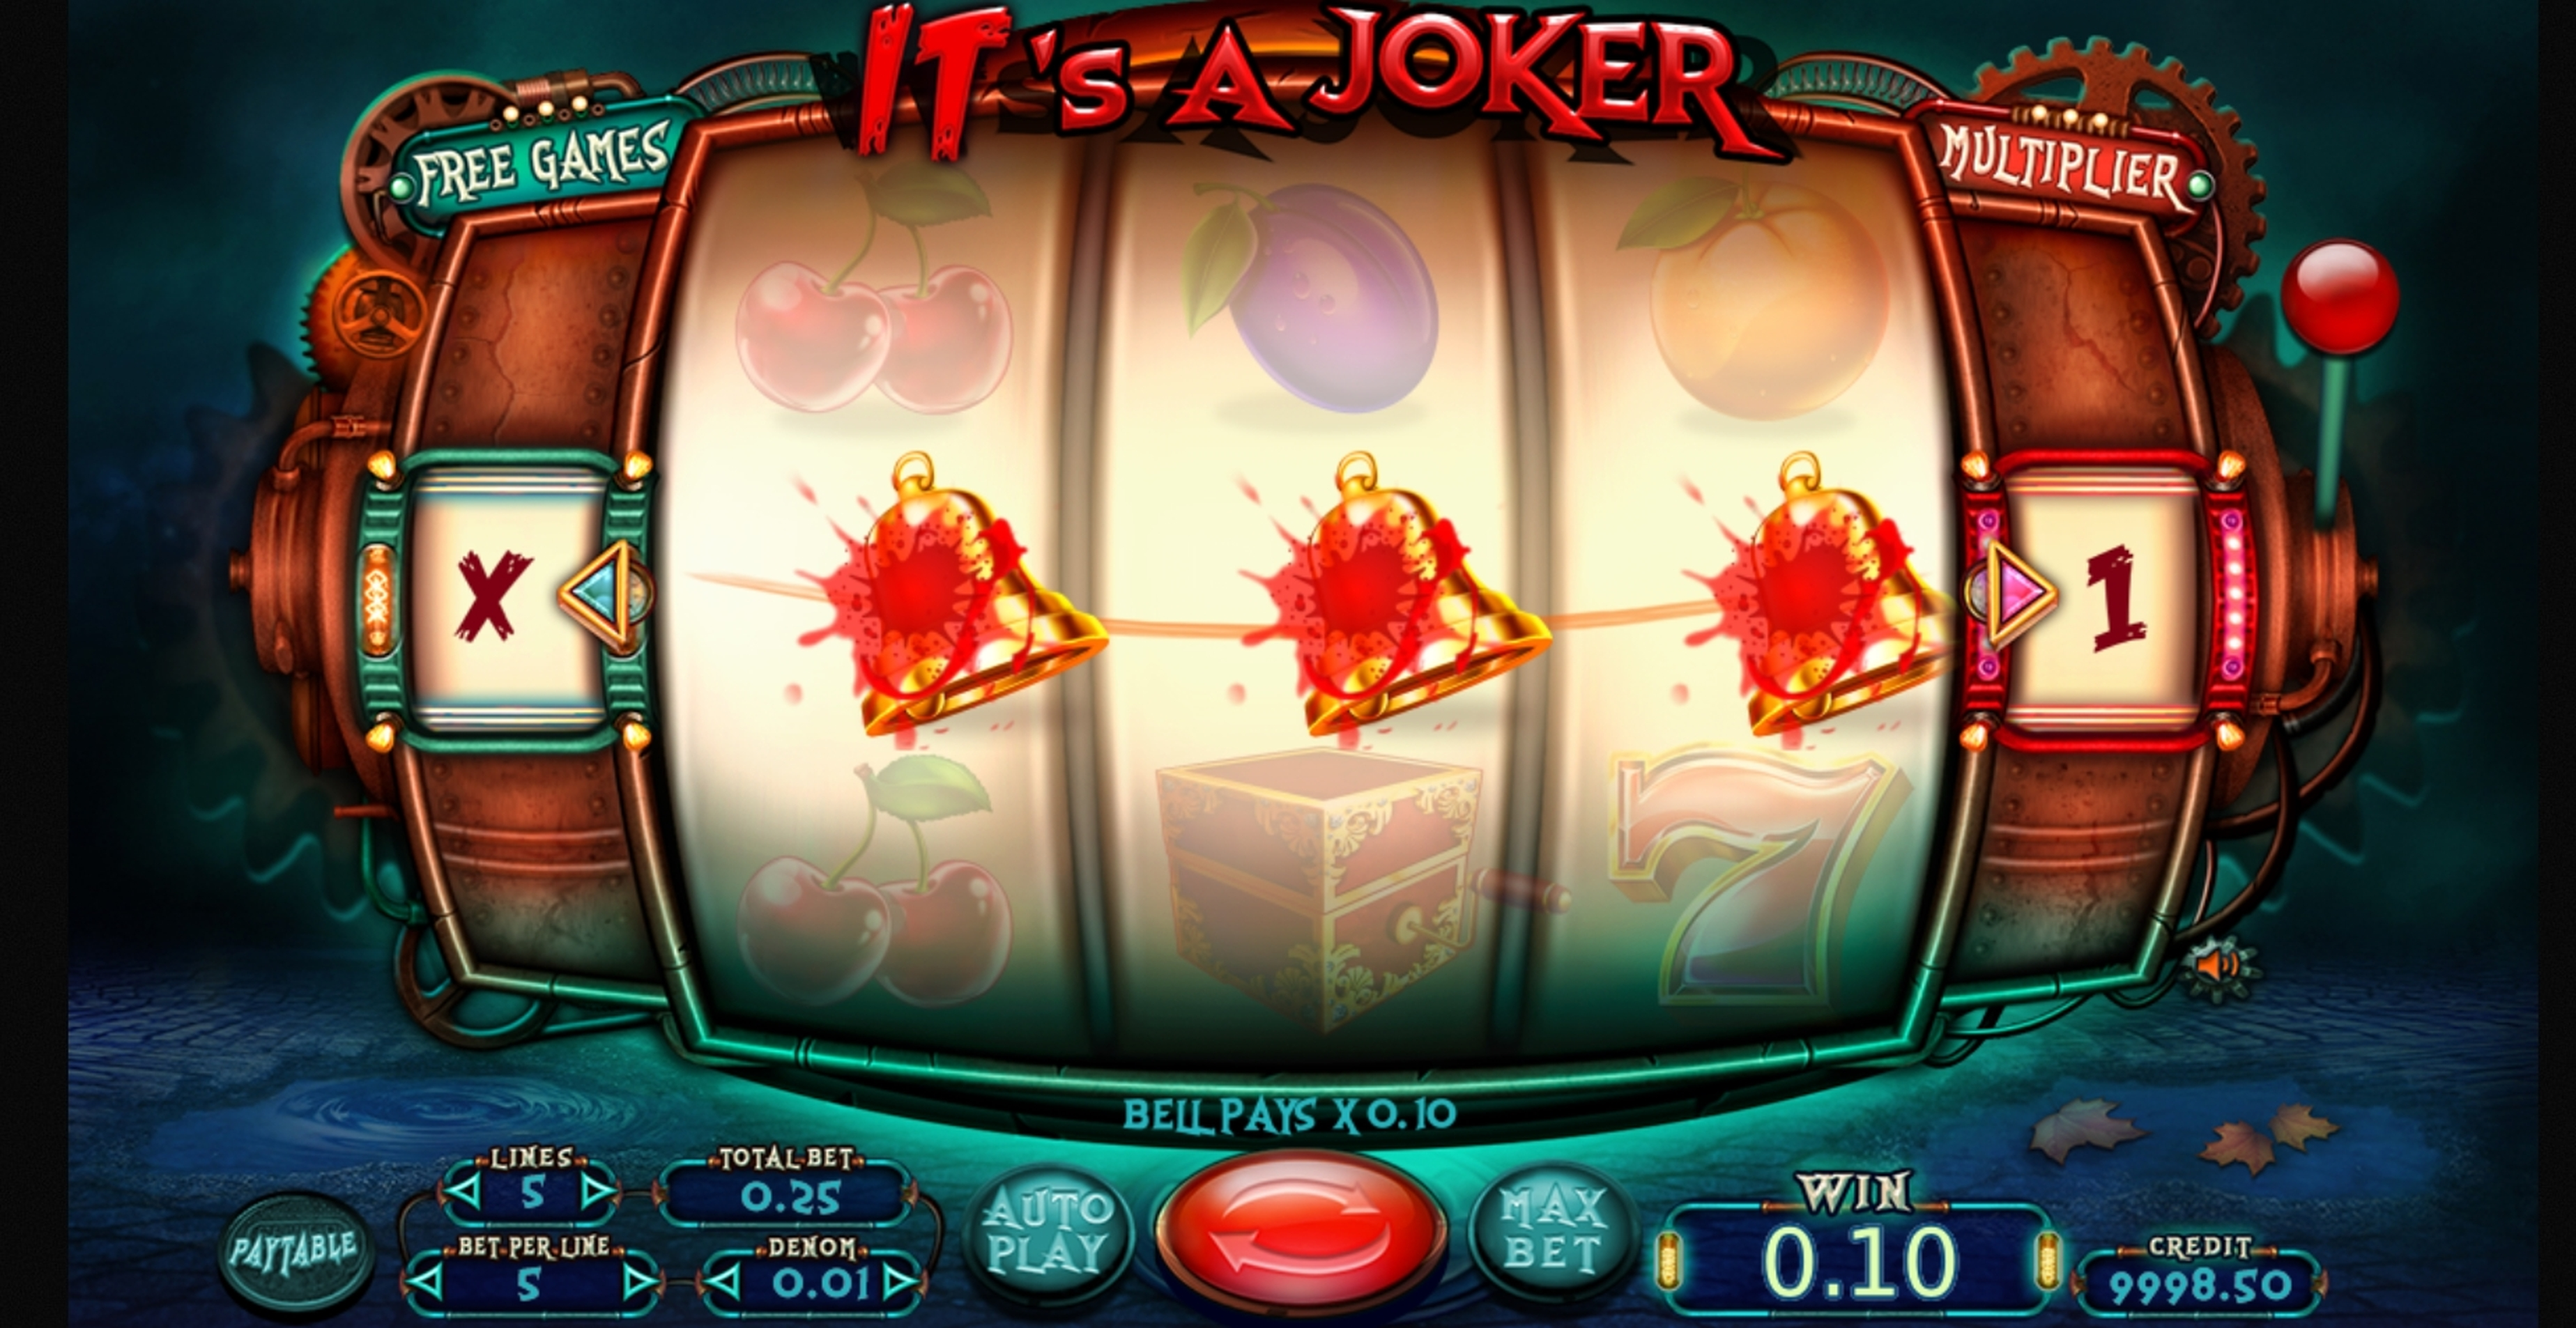 Win Money in Its a Joker Free Slot Game by Felix Gaming